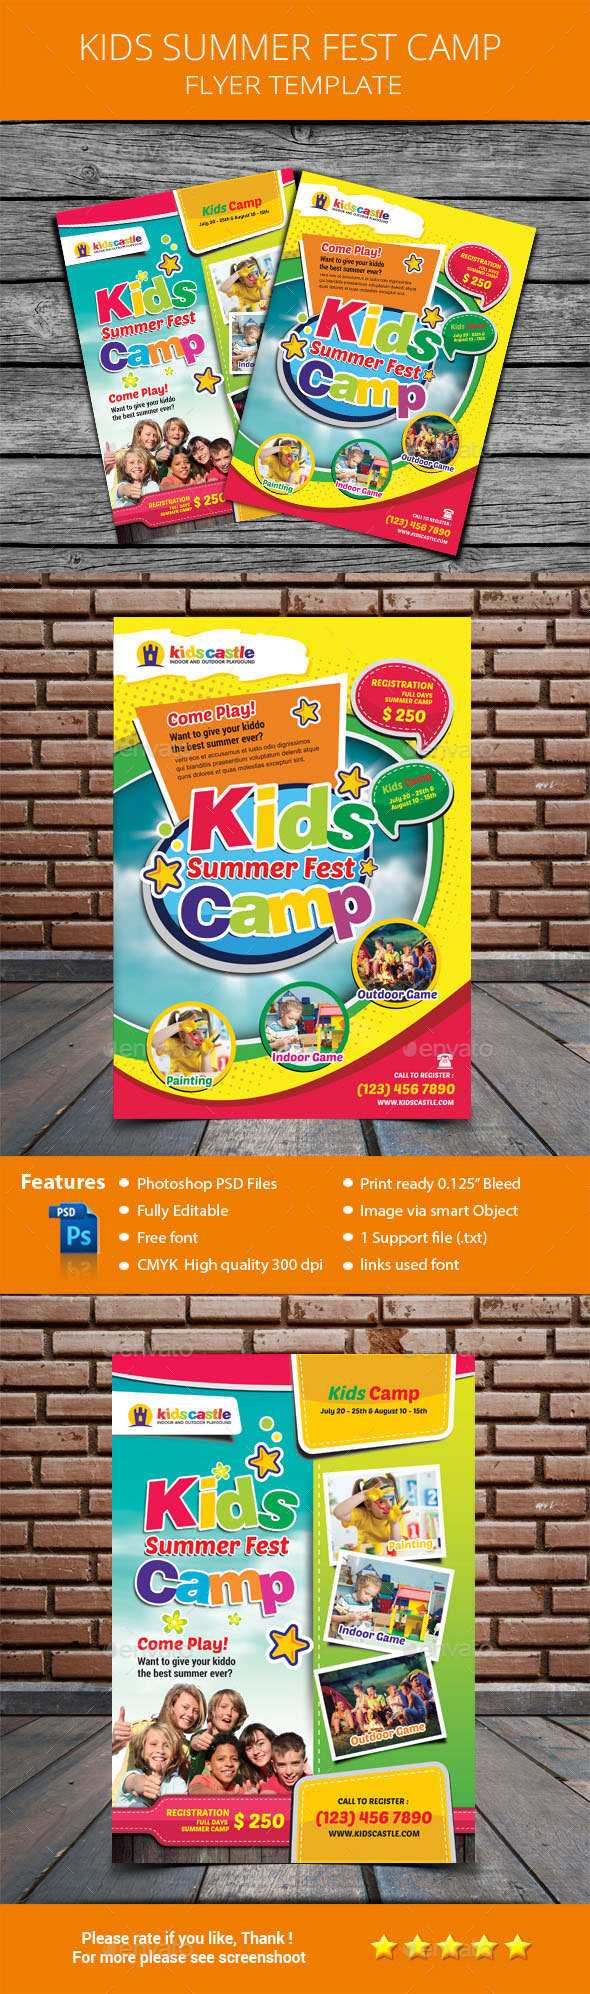 Kids Summer fest Camp Flyer